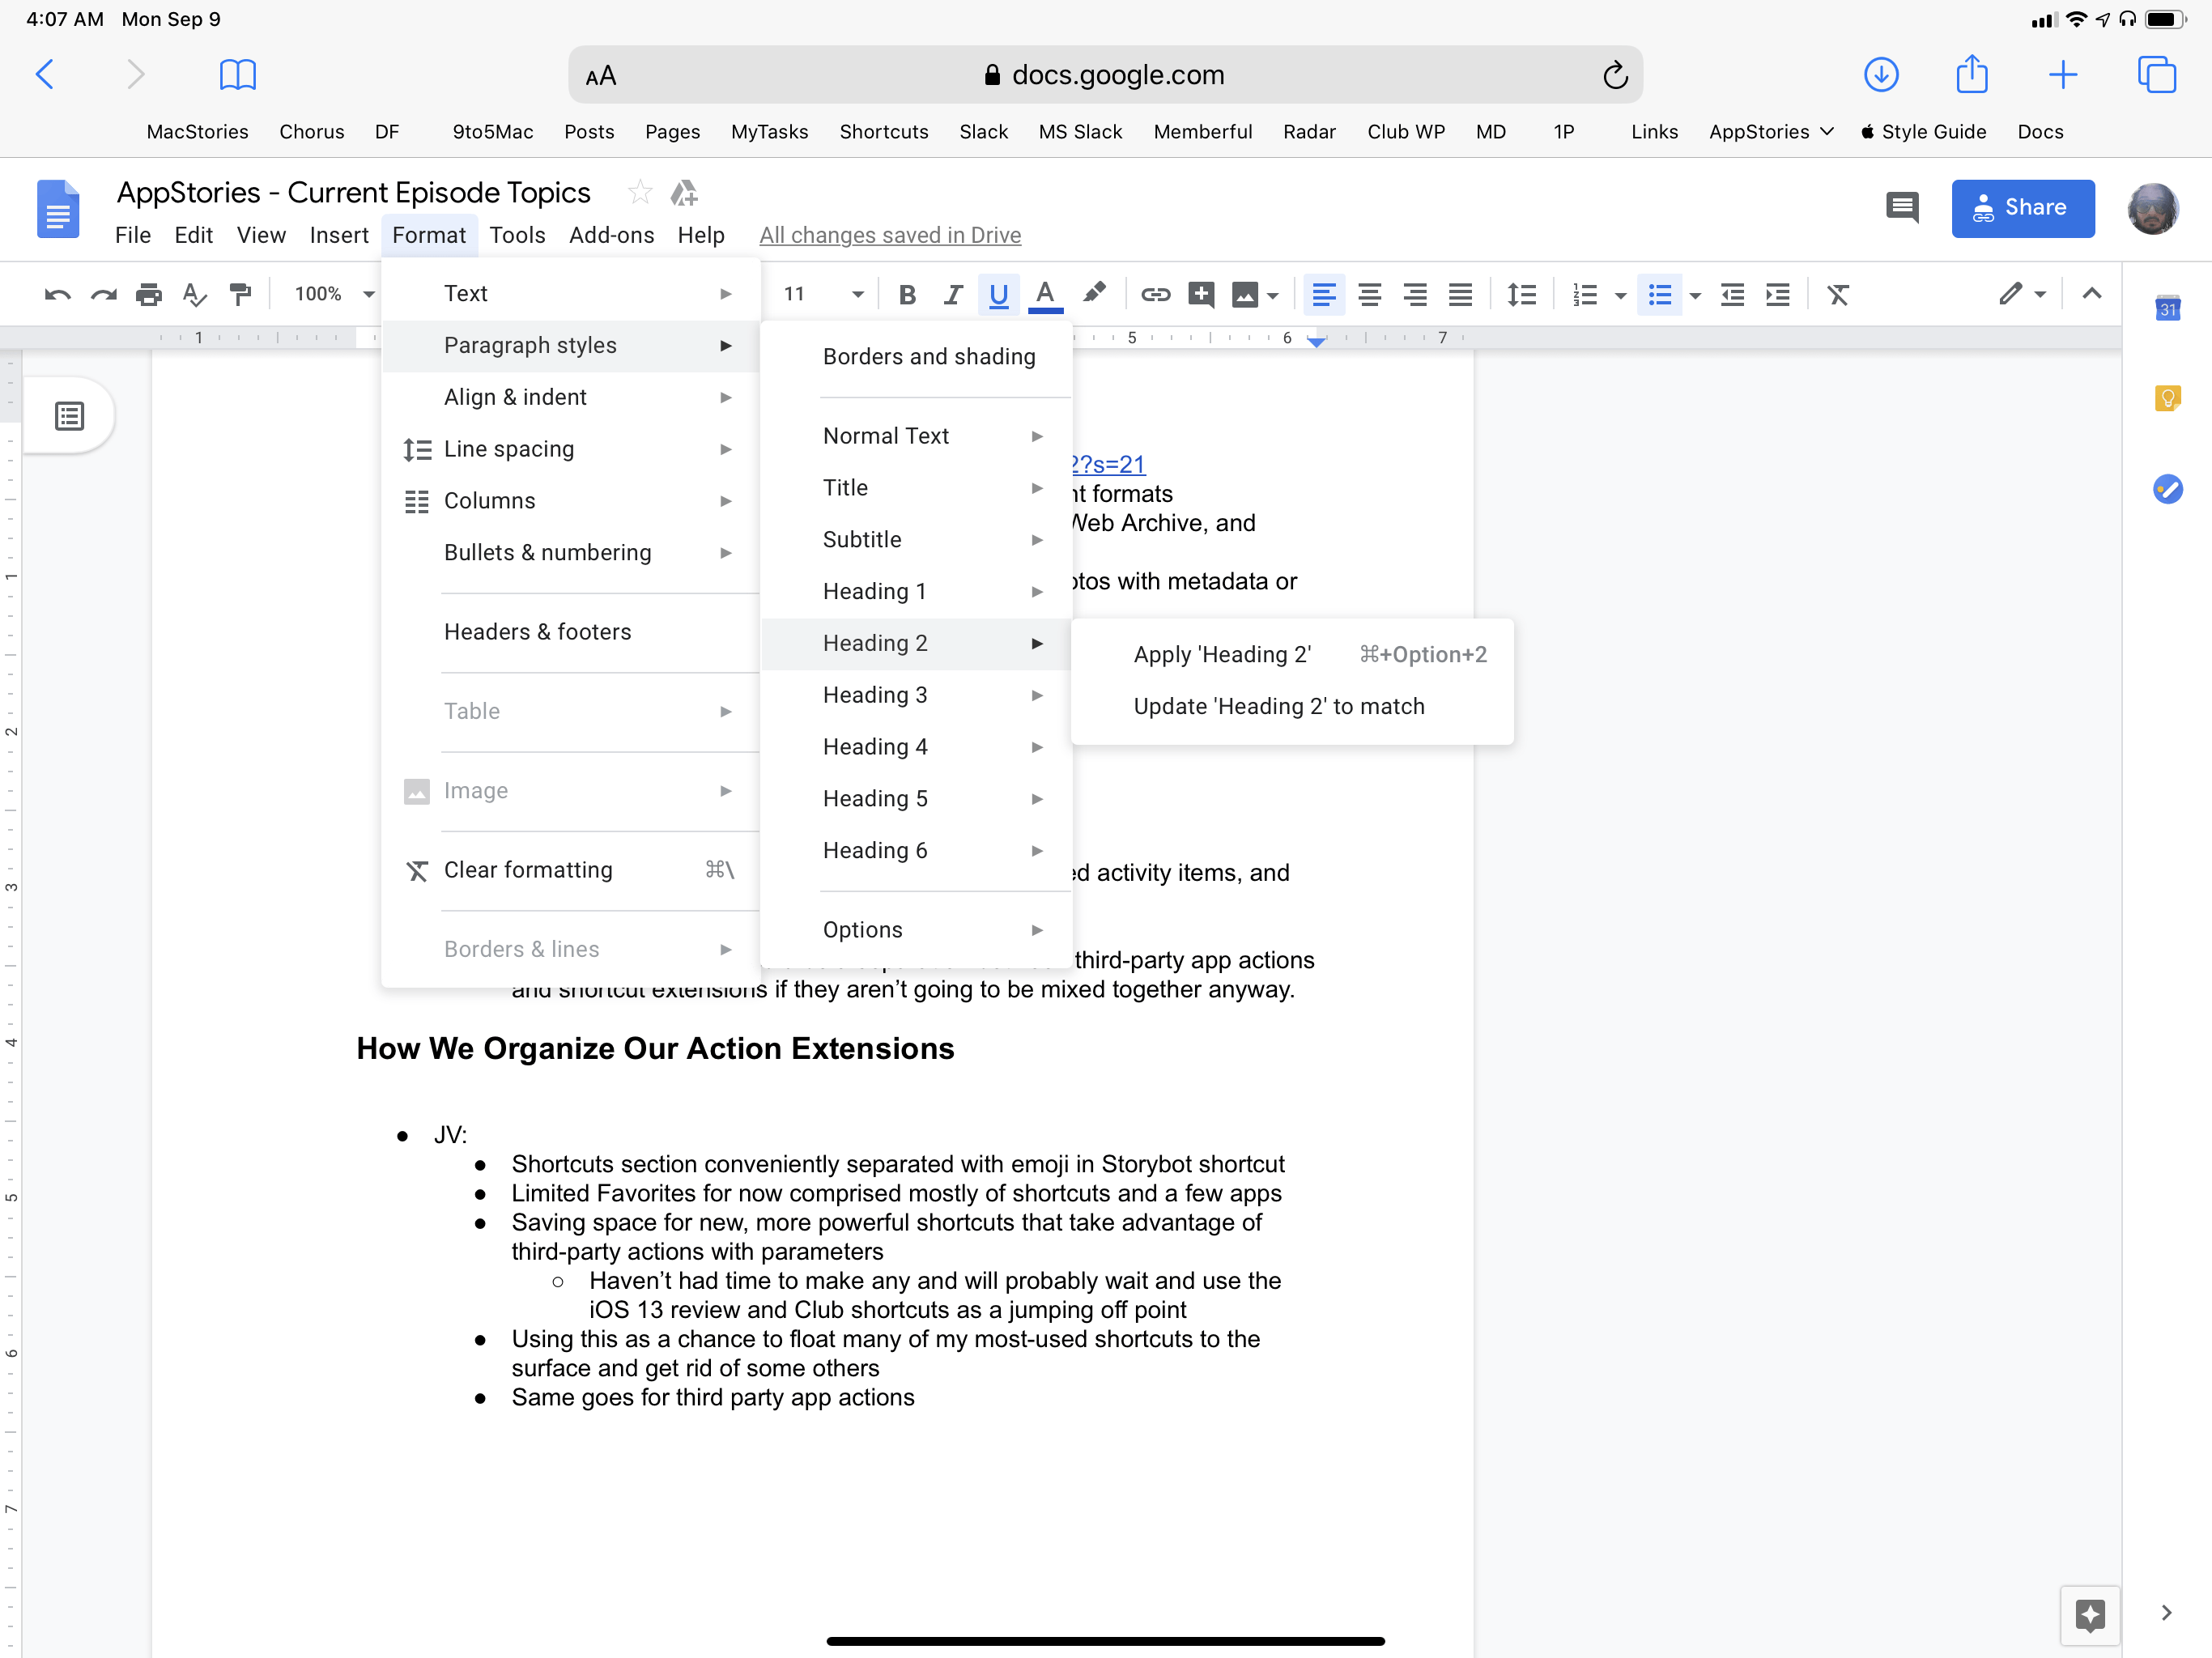 It's incredible to think that Google Docs' web app effectively didn't work at all on iPad with iOS 12, and now it's just as capable as its desktop version.